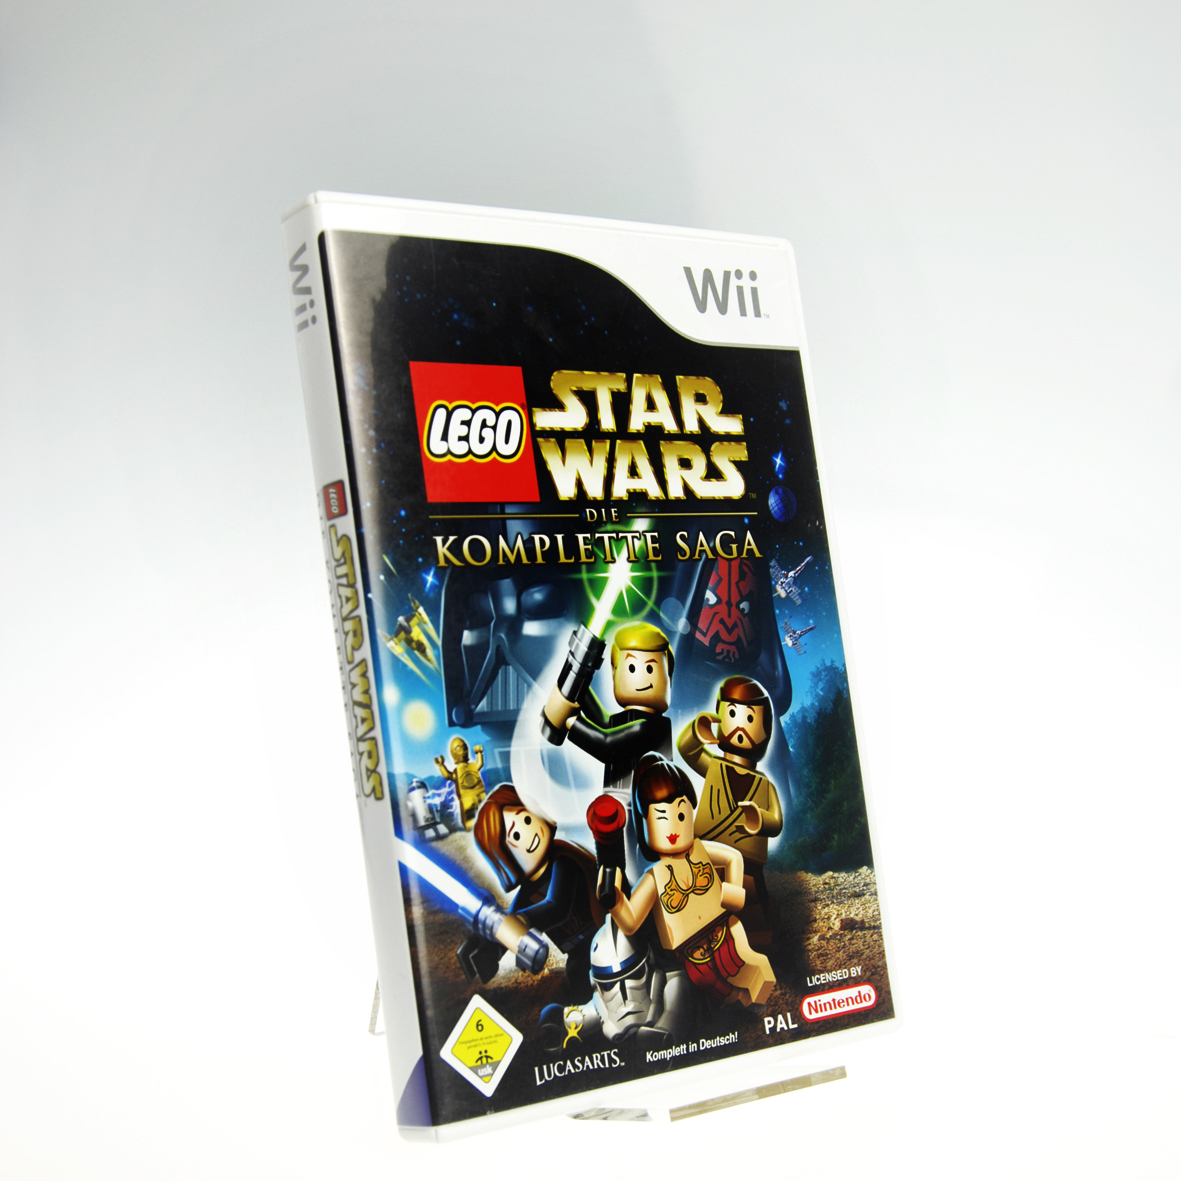 wii lego star wars die komplette saga ovp ohne anl 0023272004637 ebay. Black Bedroom Furniture Sets. Home Design Ideas